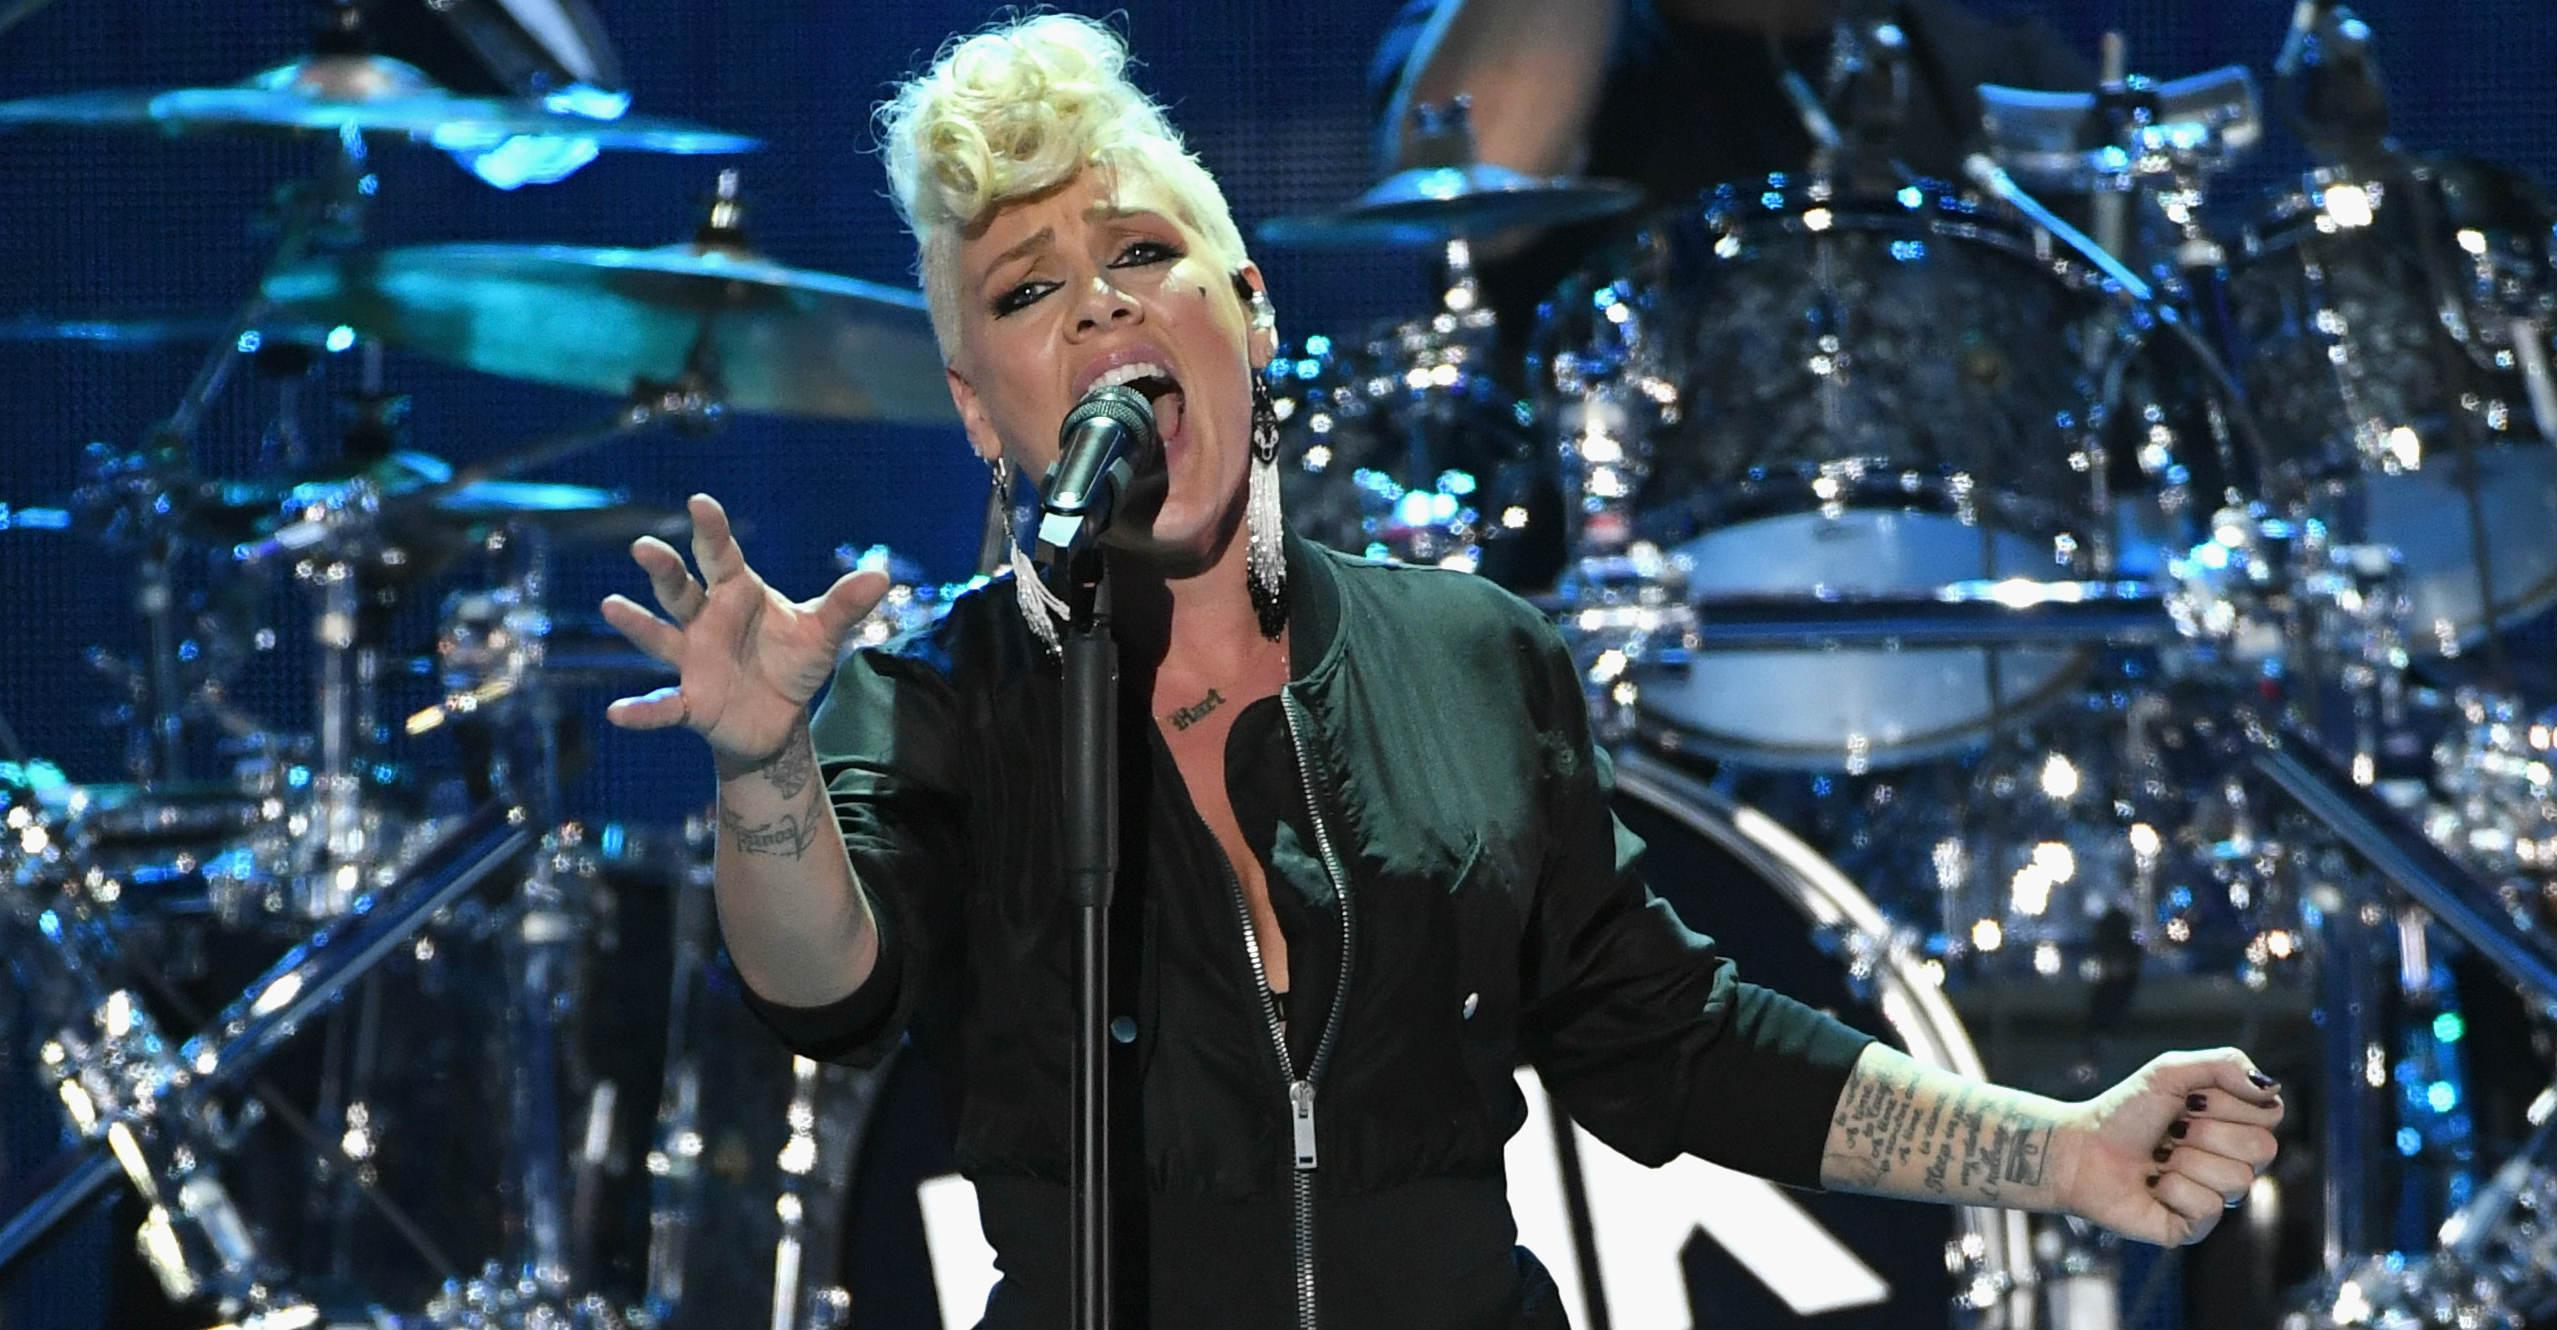 Image result for Pink 2018 tour